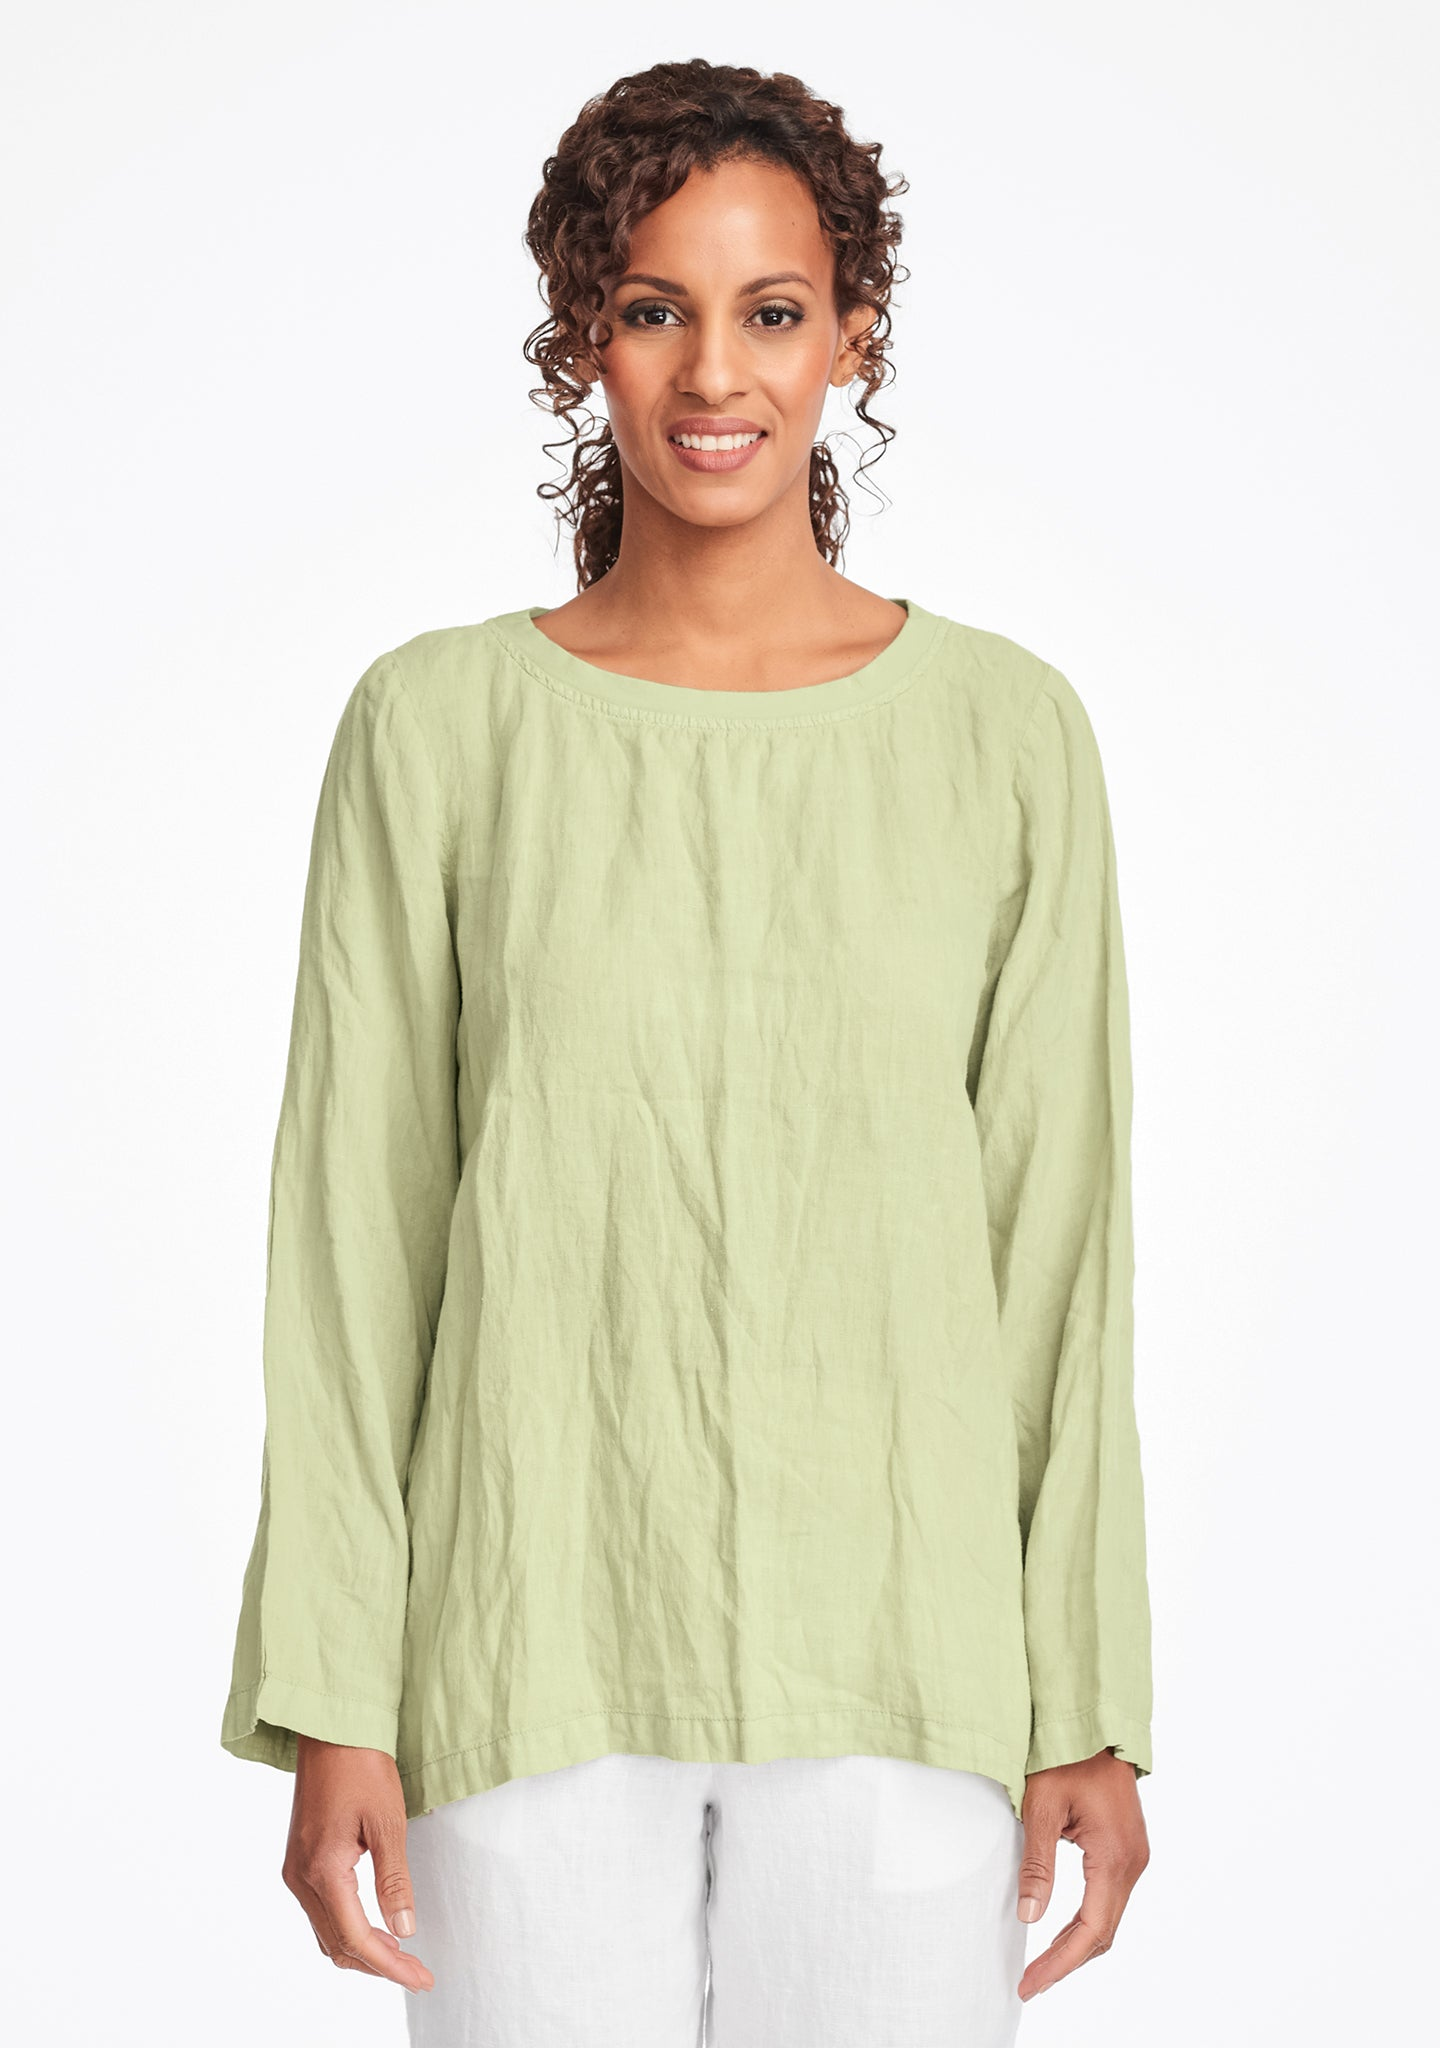 basecamp pullover long sleeve linen shirt green